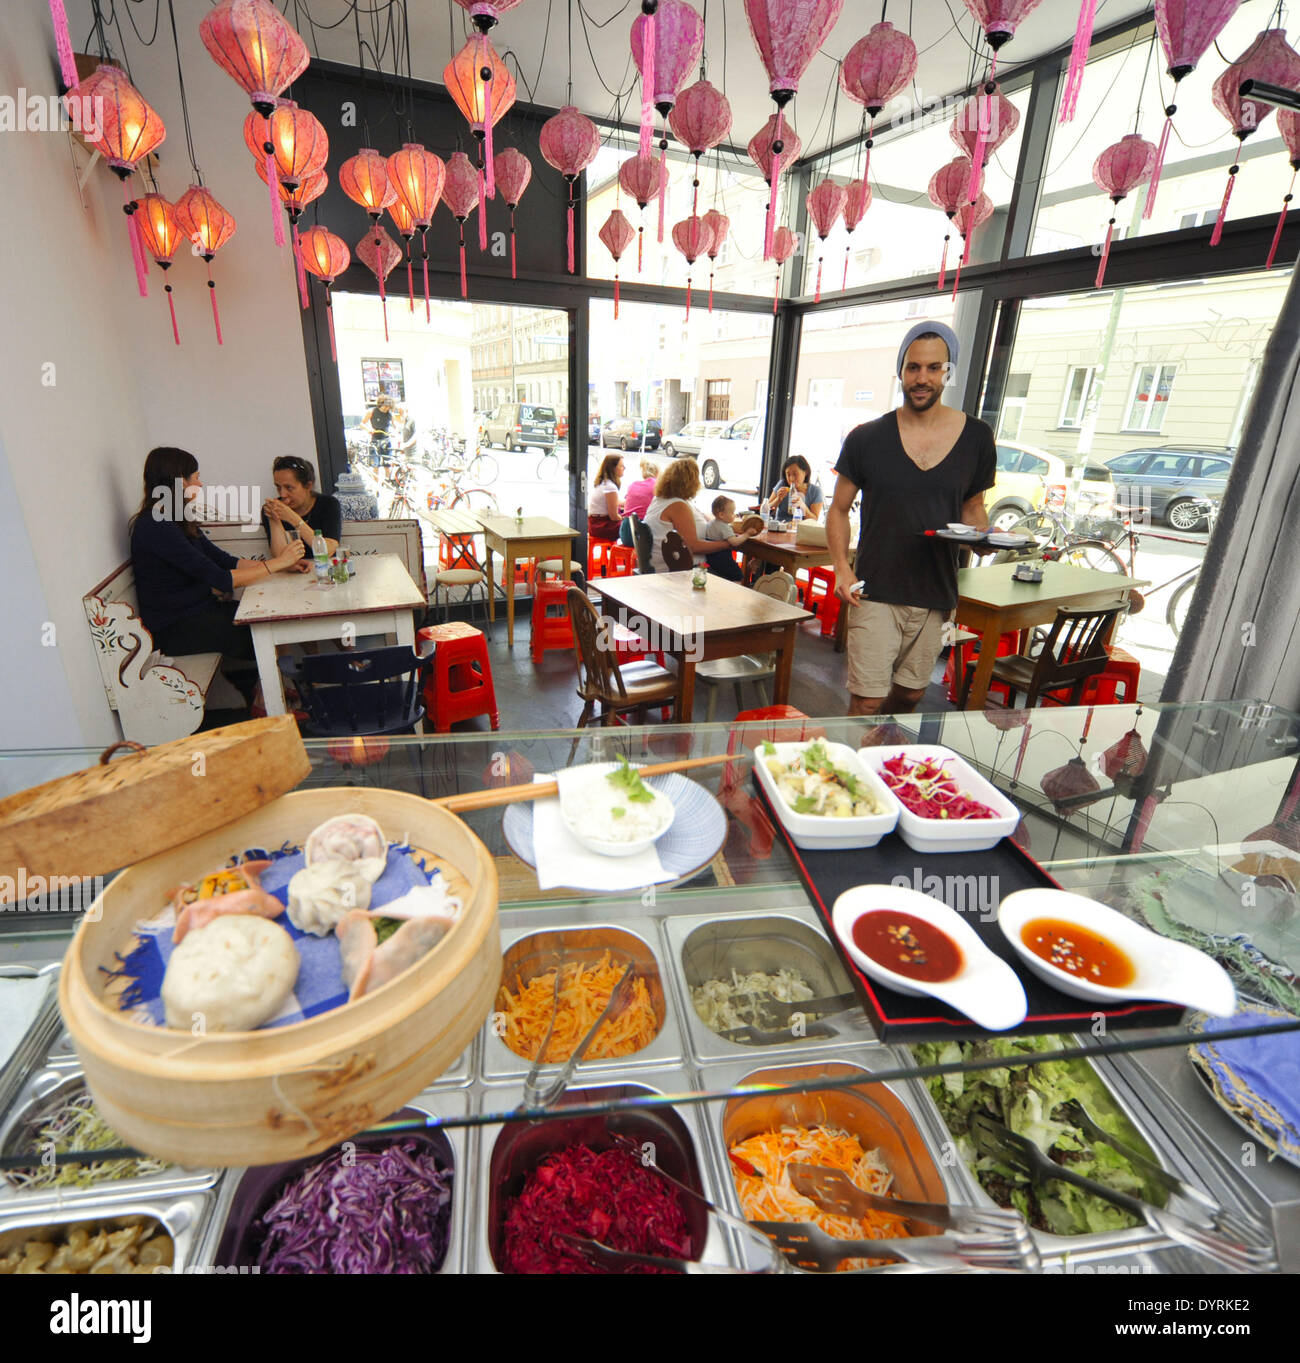 The 'Fei scho' diner in Munich, 2012 Stock Photo